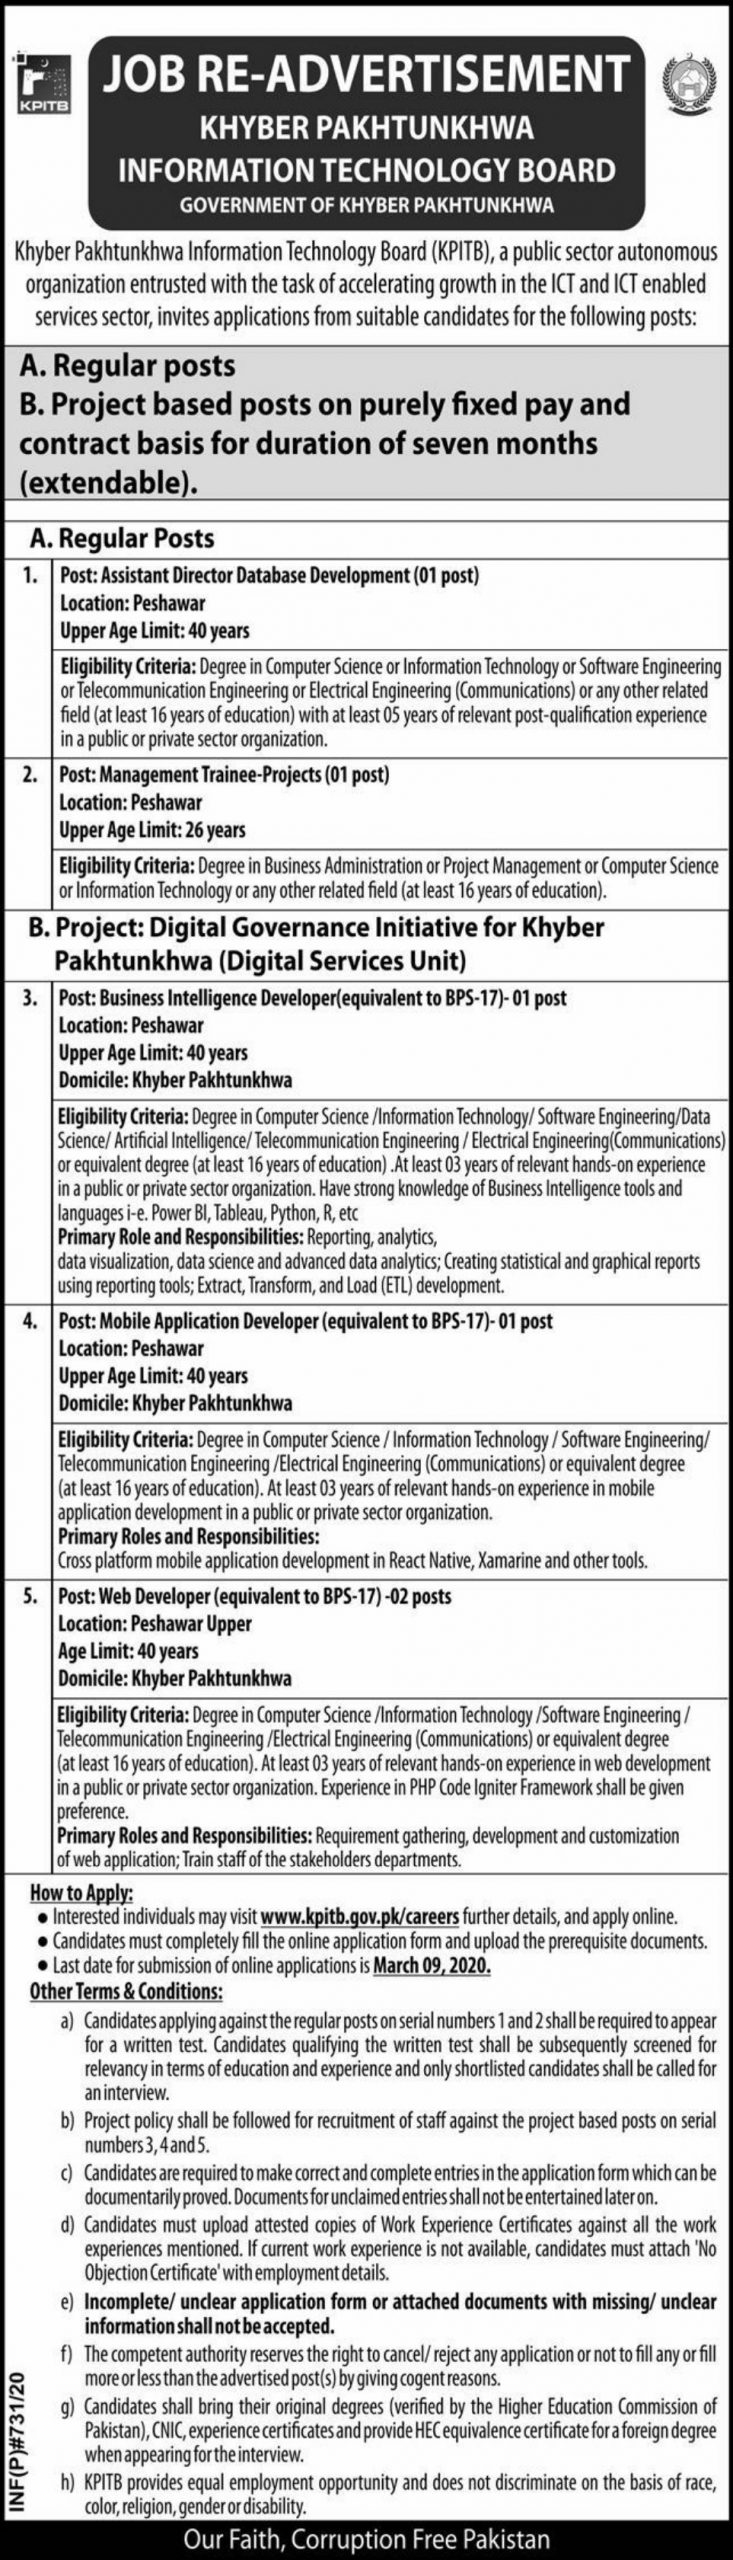 Khyber Pakhtunkhwa Information Technology Board Jobs 2020 KPITB